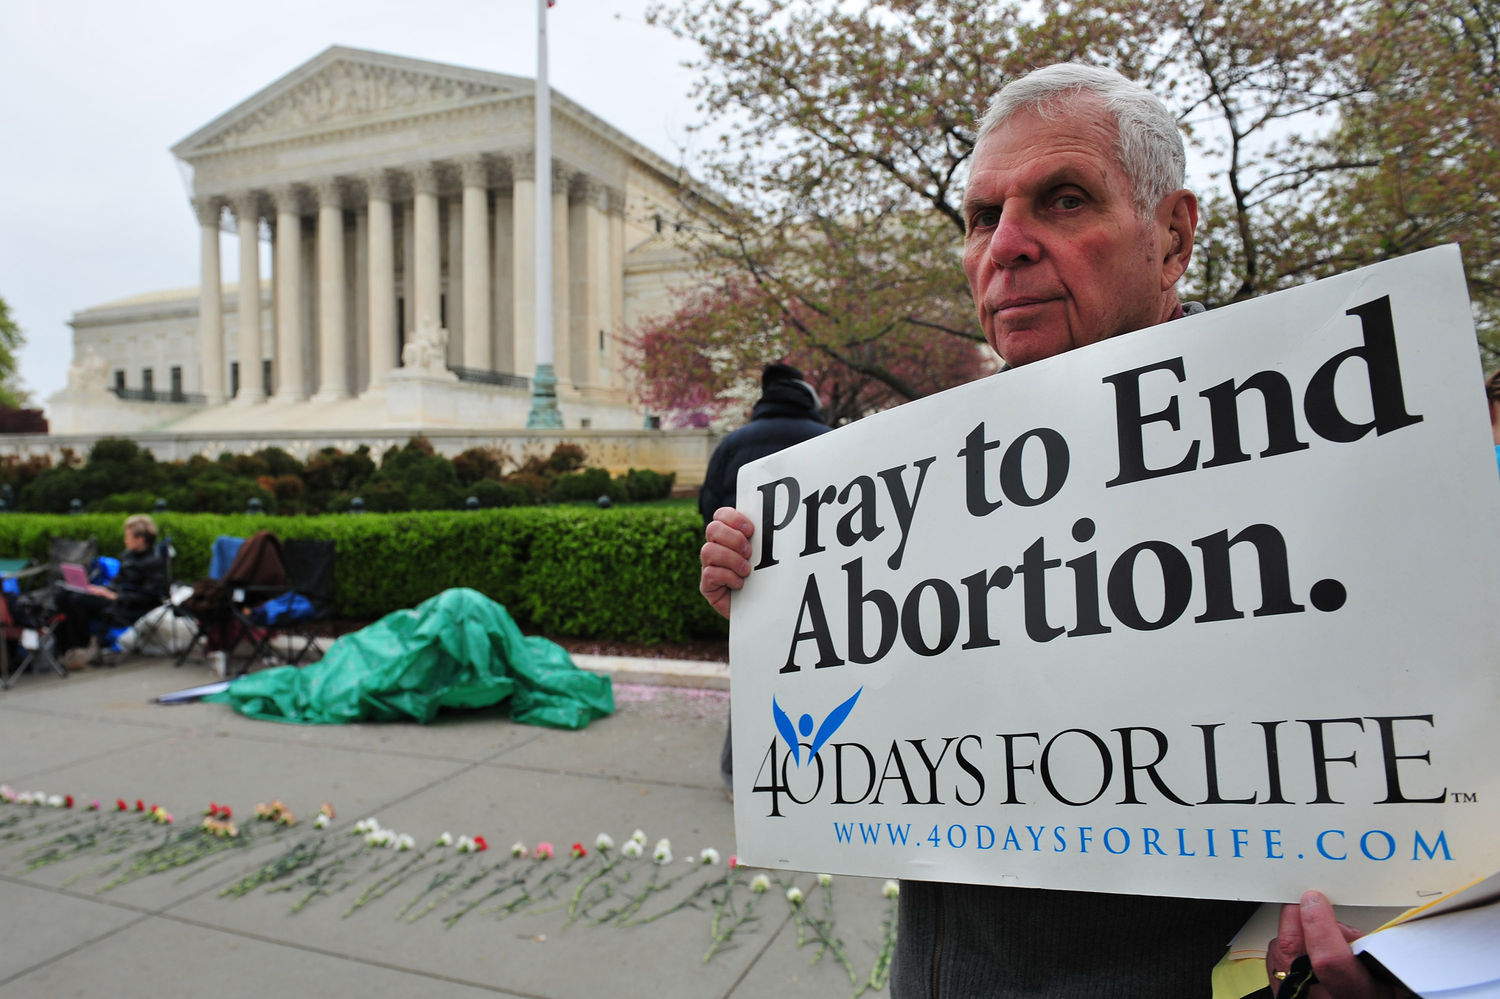 arguments against abortion in the united states This paper discusses the impact that the debate on abortions has on women's rights in the united states the first part will focus on the pro-life and pro-choice.